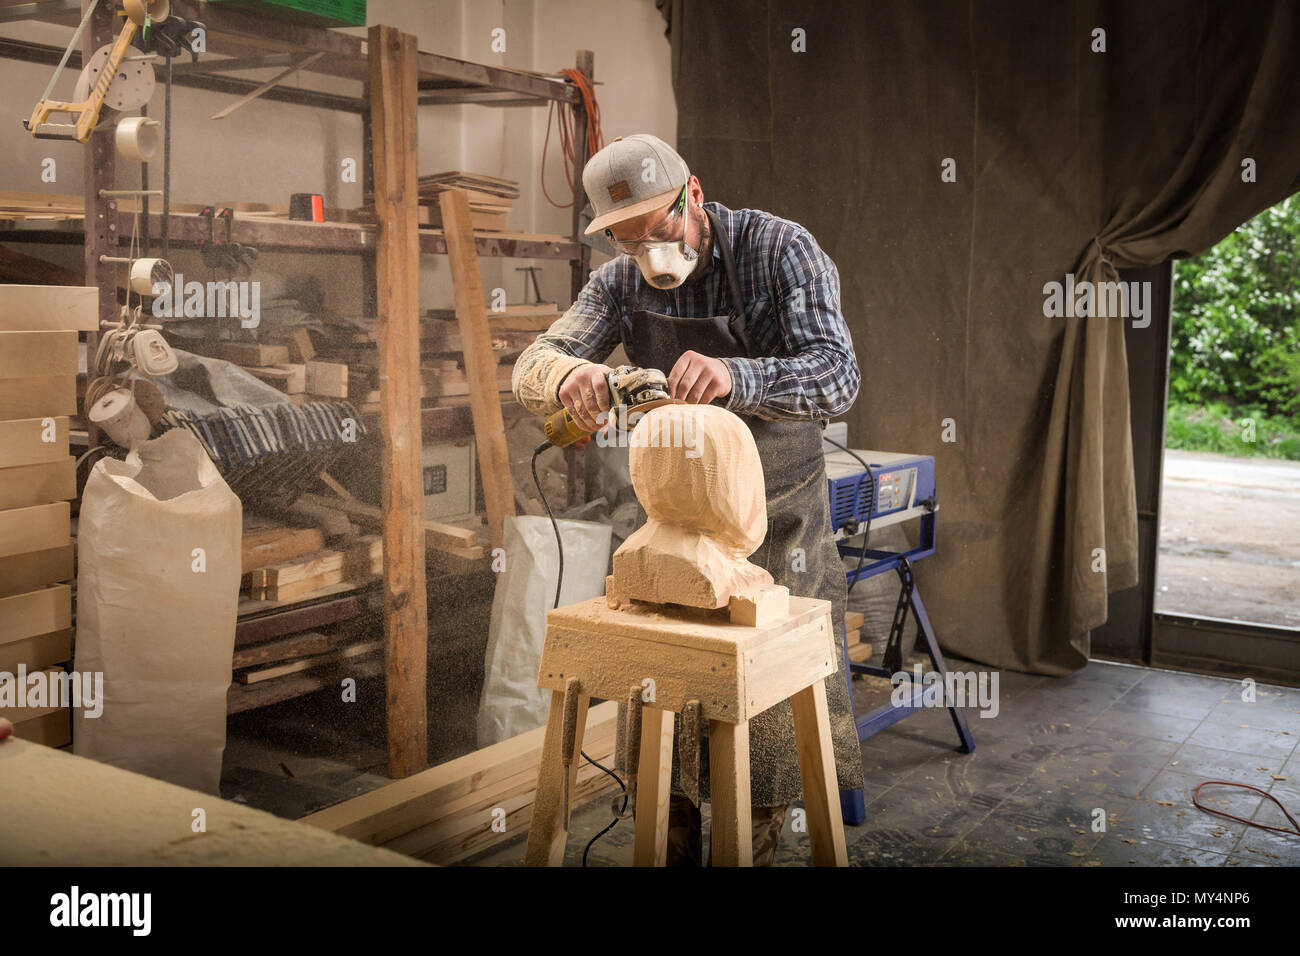 Close up  young man carpenter in a suit, goggles   saws a man's head with a tree , using an angle grinder  in the workshop, around a lot of tools for  - Stock Image